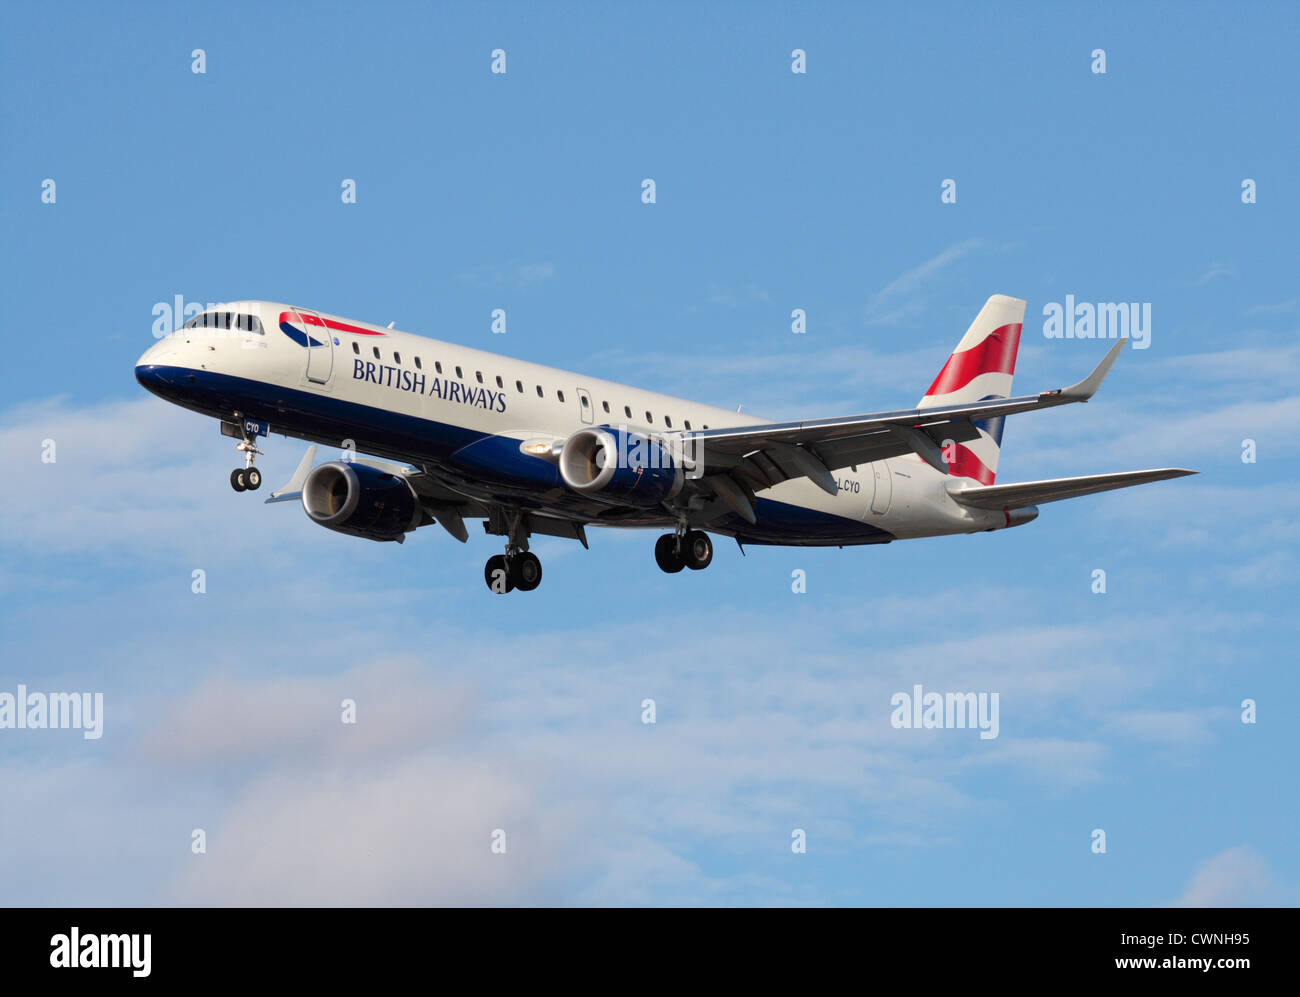 British Airways Embraer 190 regional jet on final approach - Stock Image